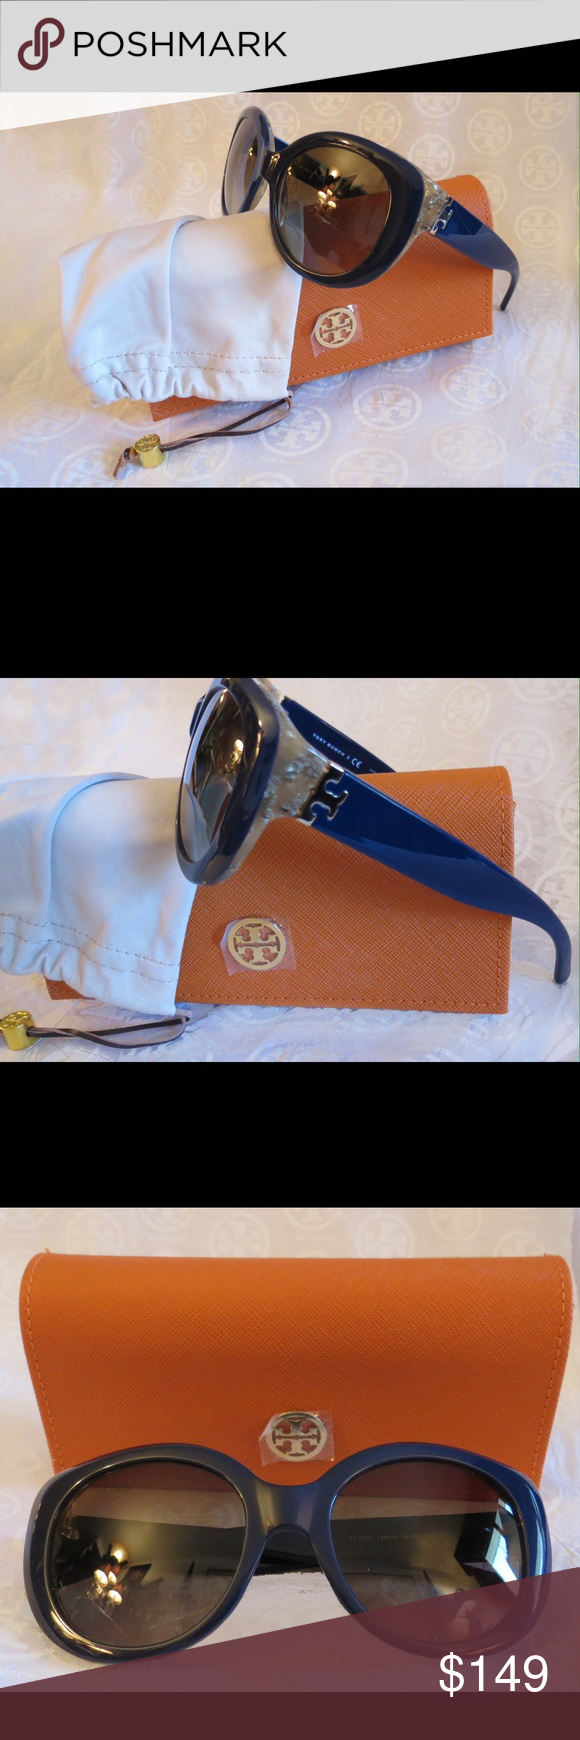 NWT Stunning Tory Burch Sunnies Ty7076 Blue Horn NWT Tory Burch Sunglasses Ty7076 134513  Time for some new fabulous authentic designer shades!!  Frame Color: Navy Blue & Horn Lens Color:  Brown Gradient Lens These are PERFECT Flawless NEVER even worn or tried on. It's just reflections that might make they look like there are issues, they are again Perfect!  Comes with original bag with tags from Luxottica, case and dust bag. All of my items are Guaranteed 100% Genuine I do not sell FAKES of…